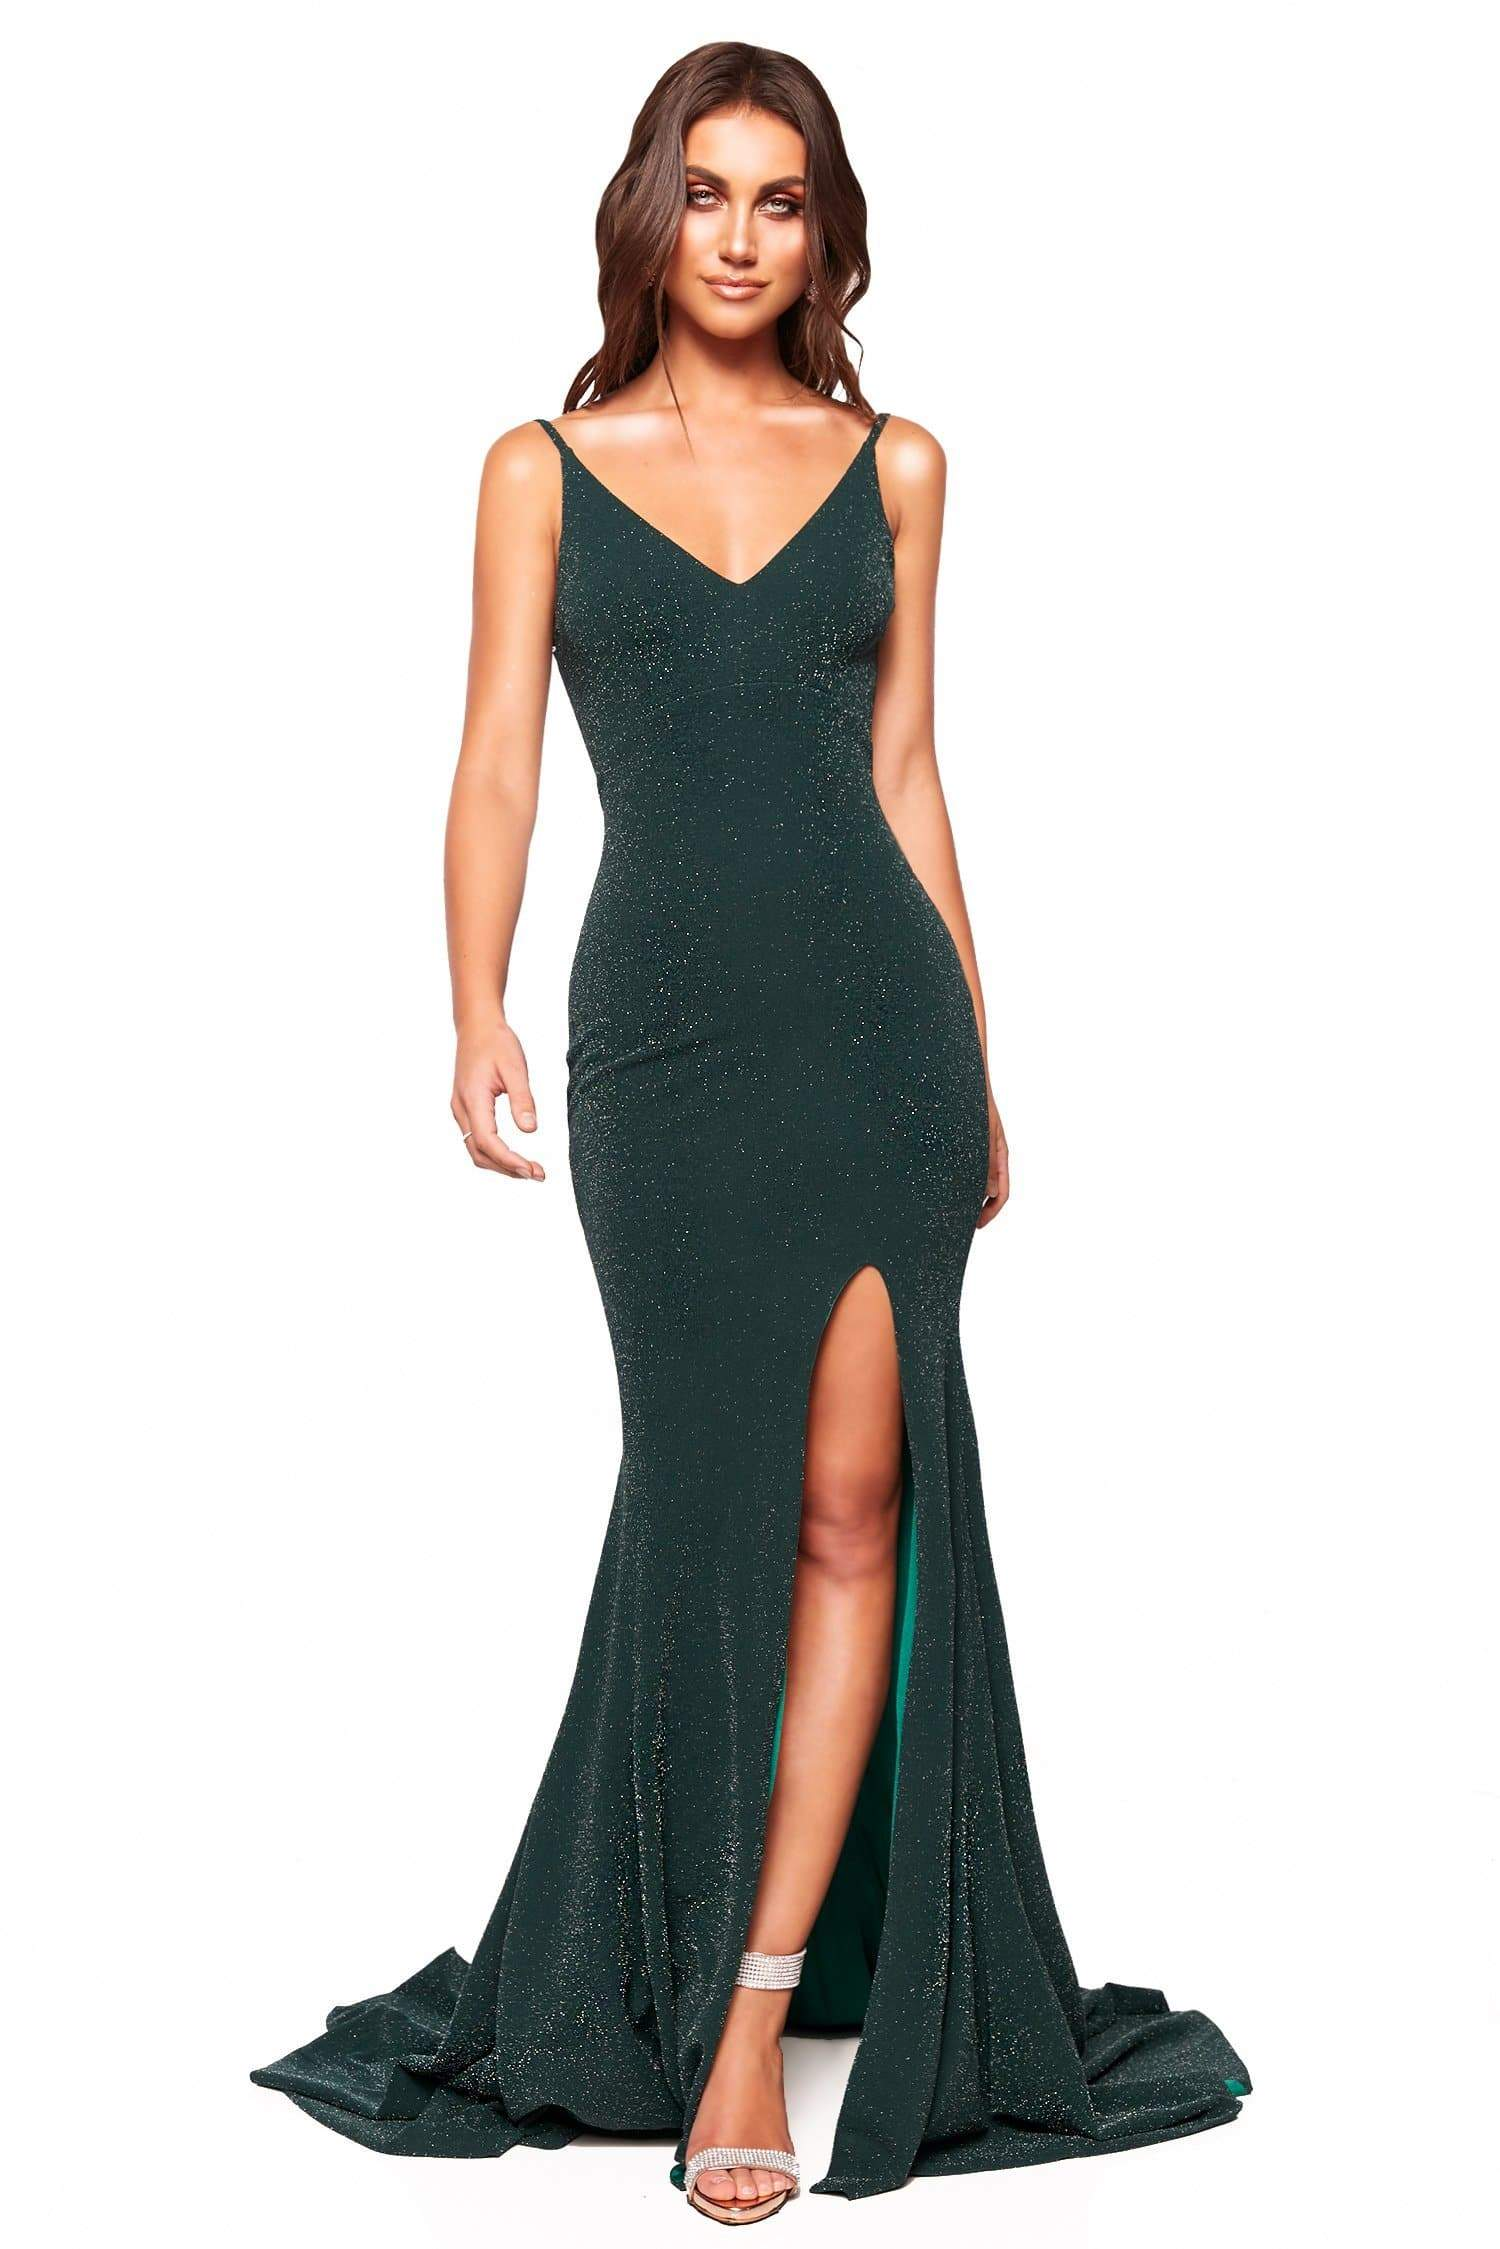 A&N Luxe Willow - Forest Green Shimmering Gown with Low Back & Slit